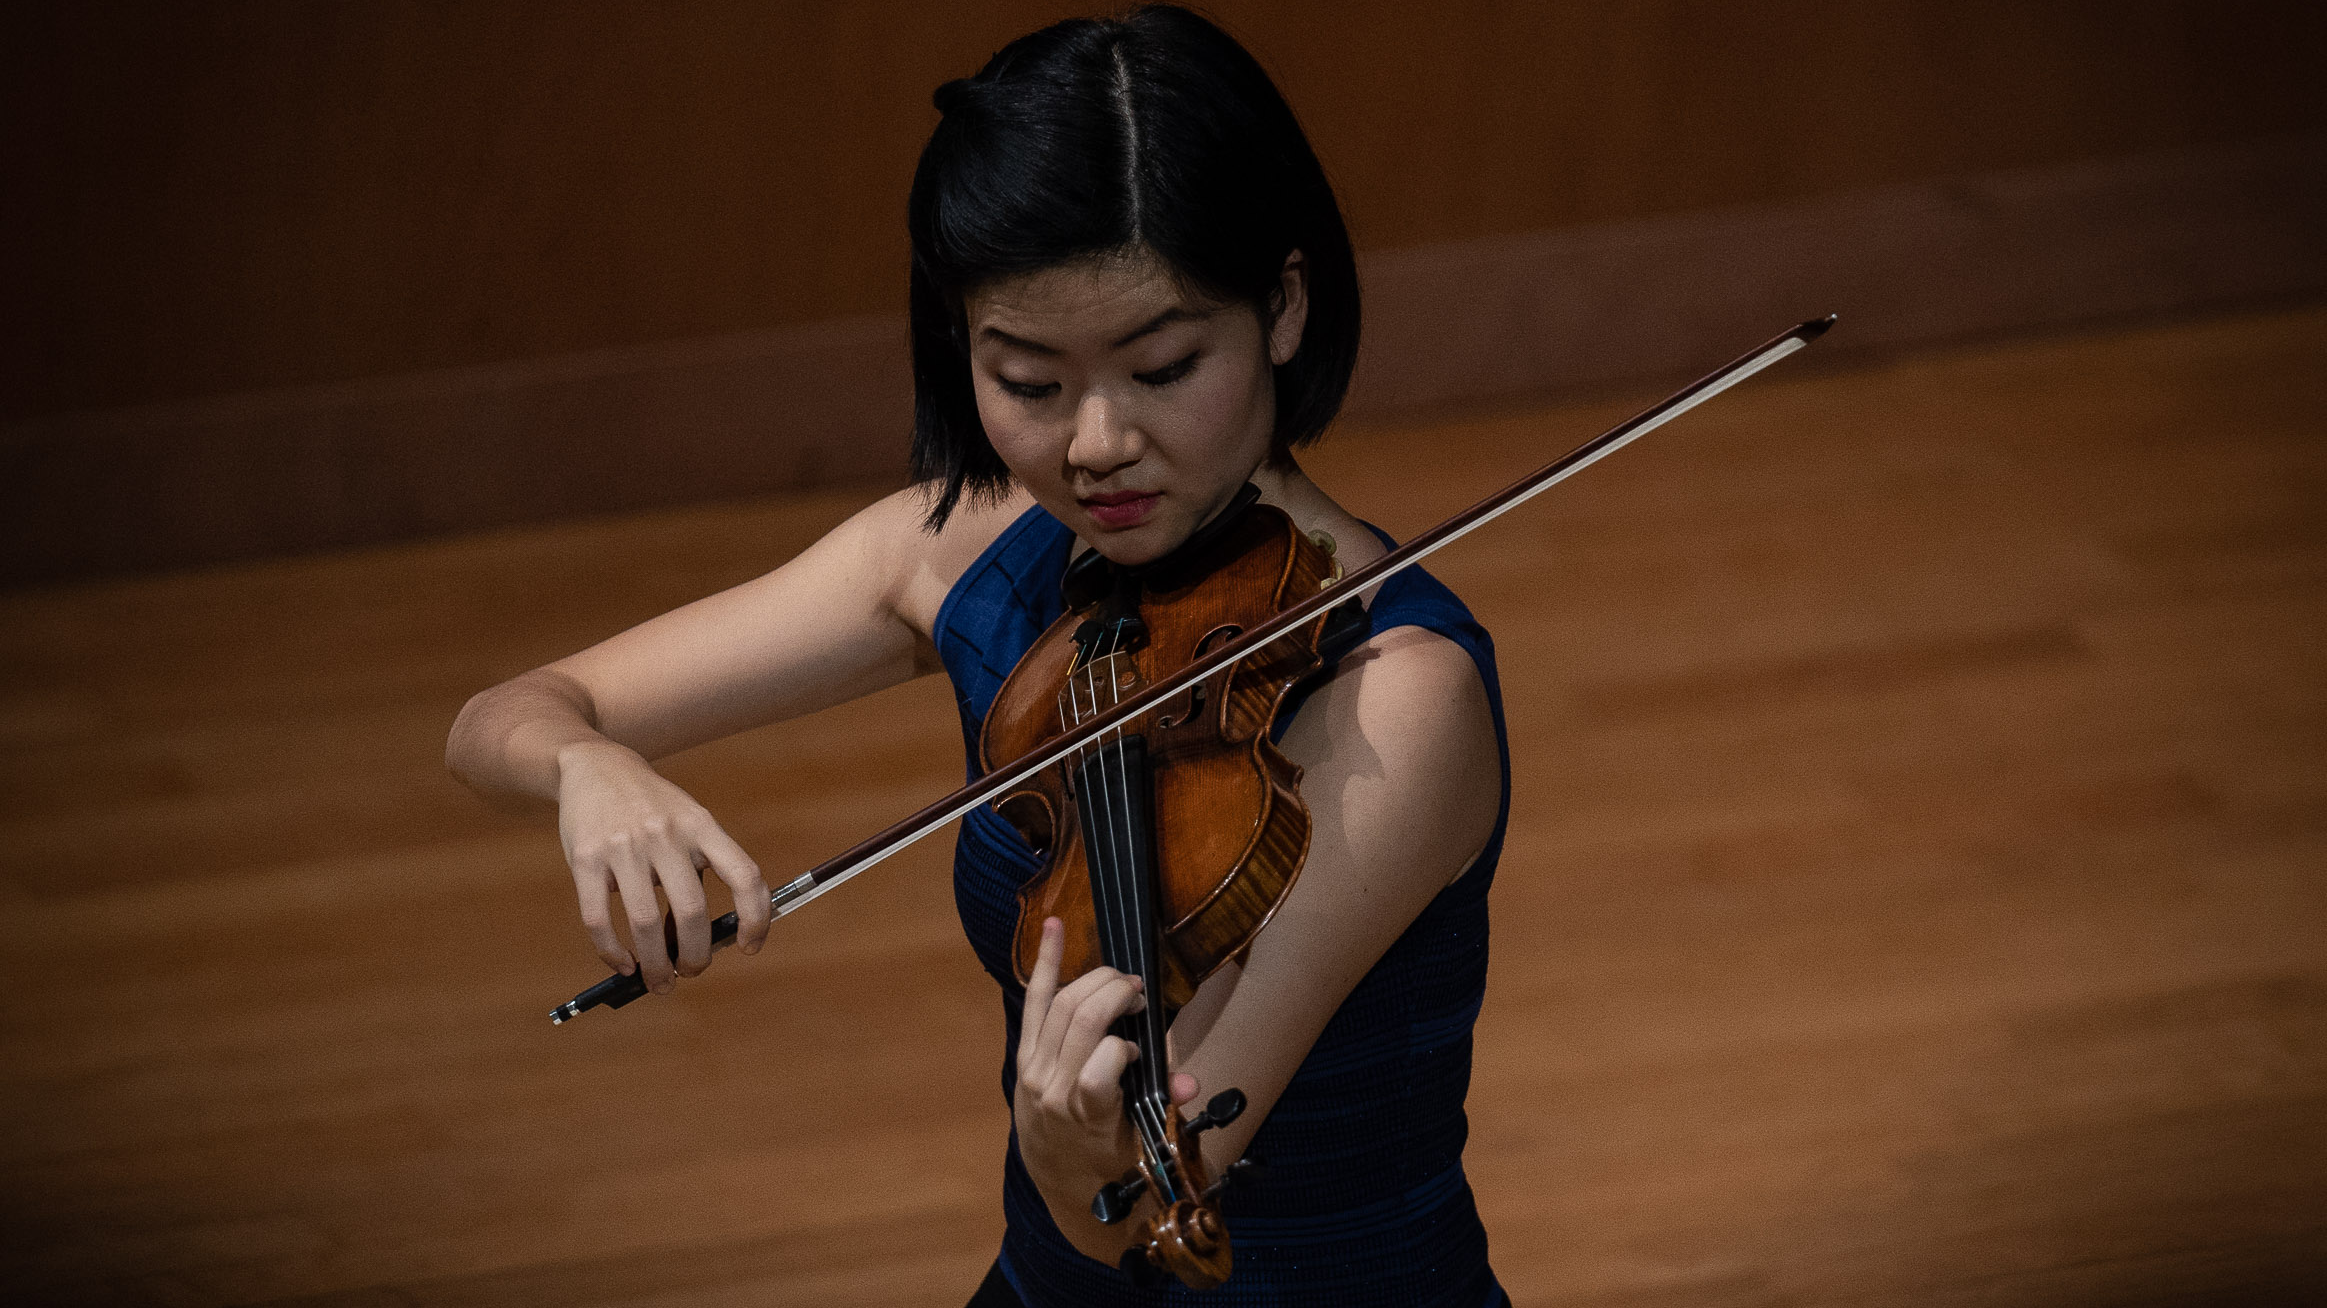 Final Round of the International Long-Thibaud-Crespin Competition: Recital – (II/II)